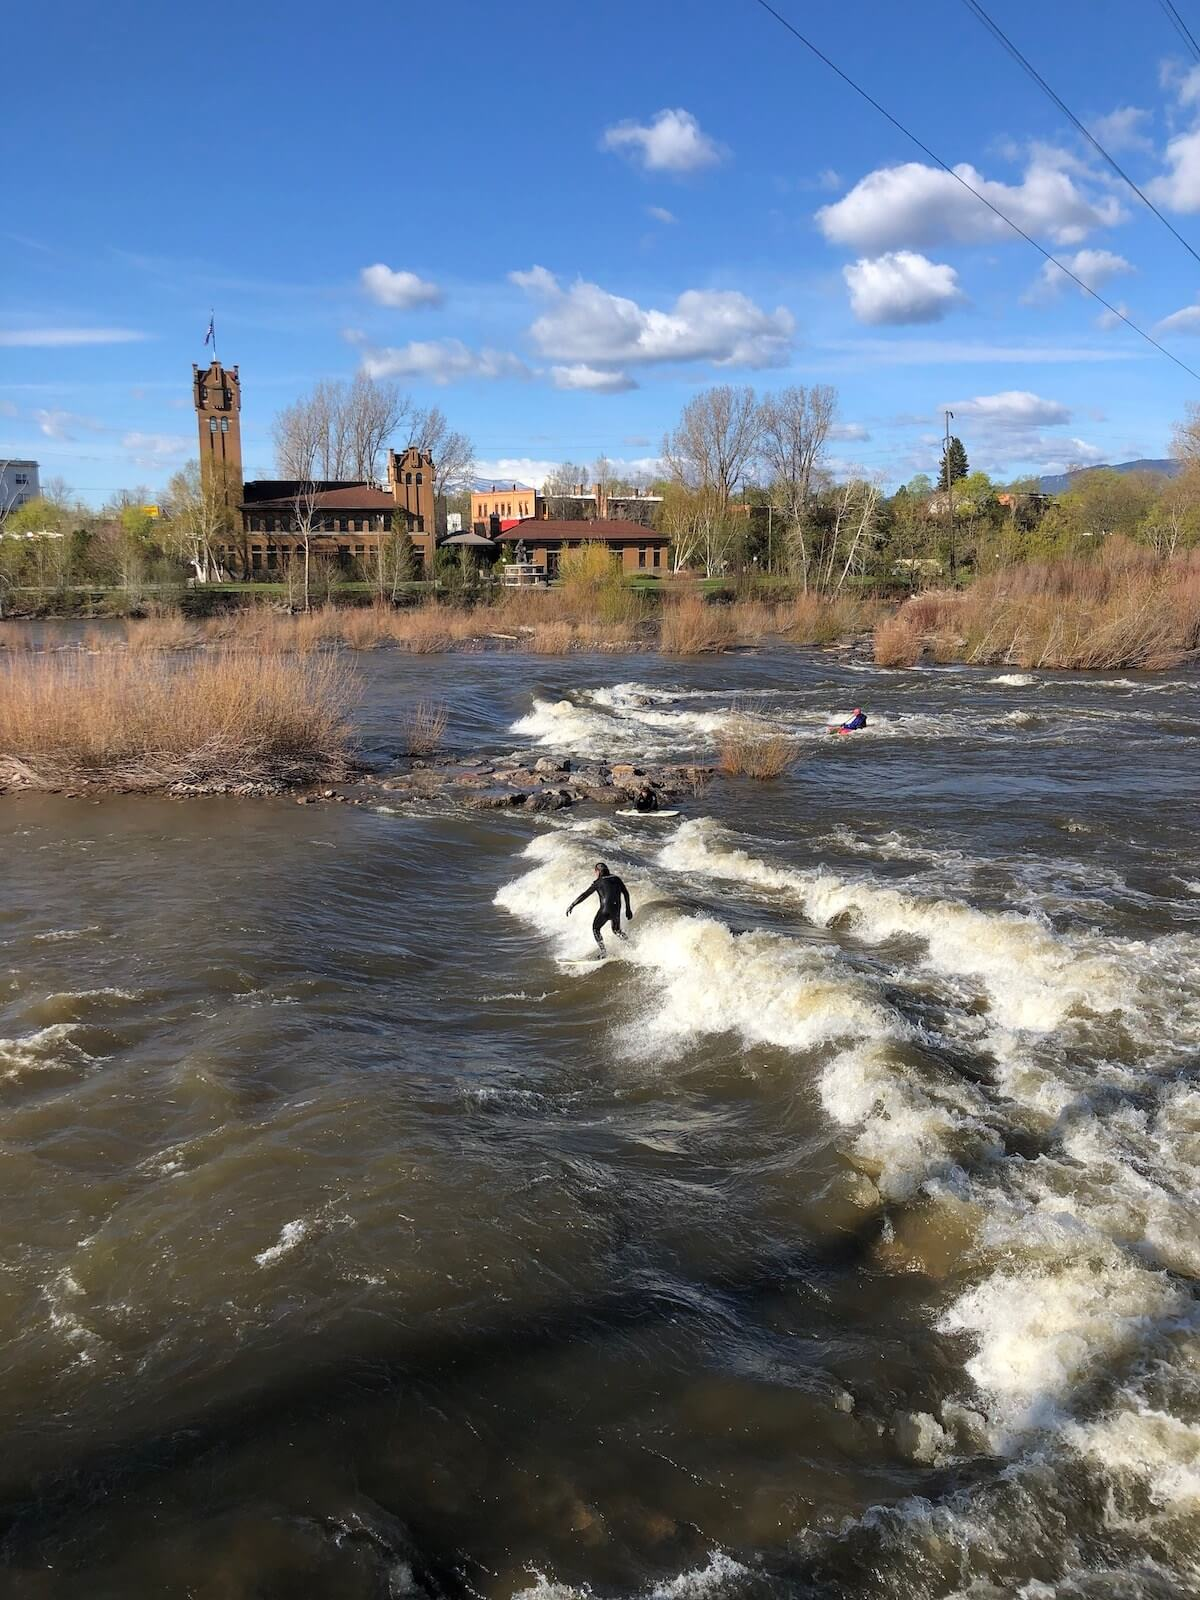 surfer river surfing on Brennan's Wave in Missoula Montana